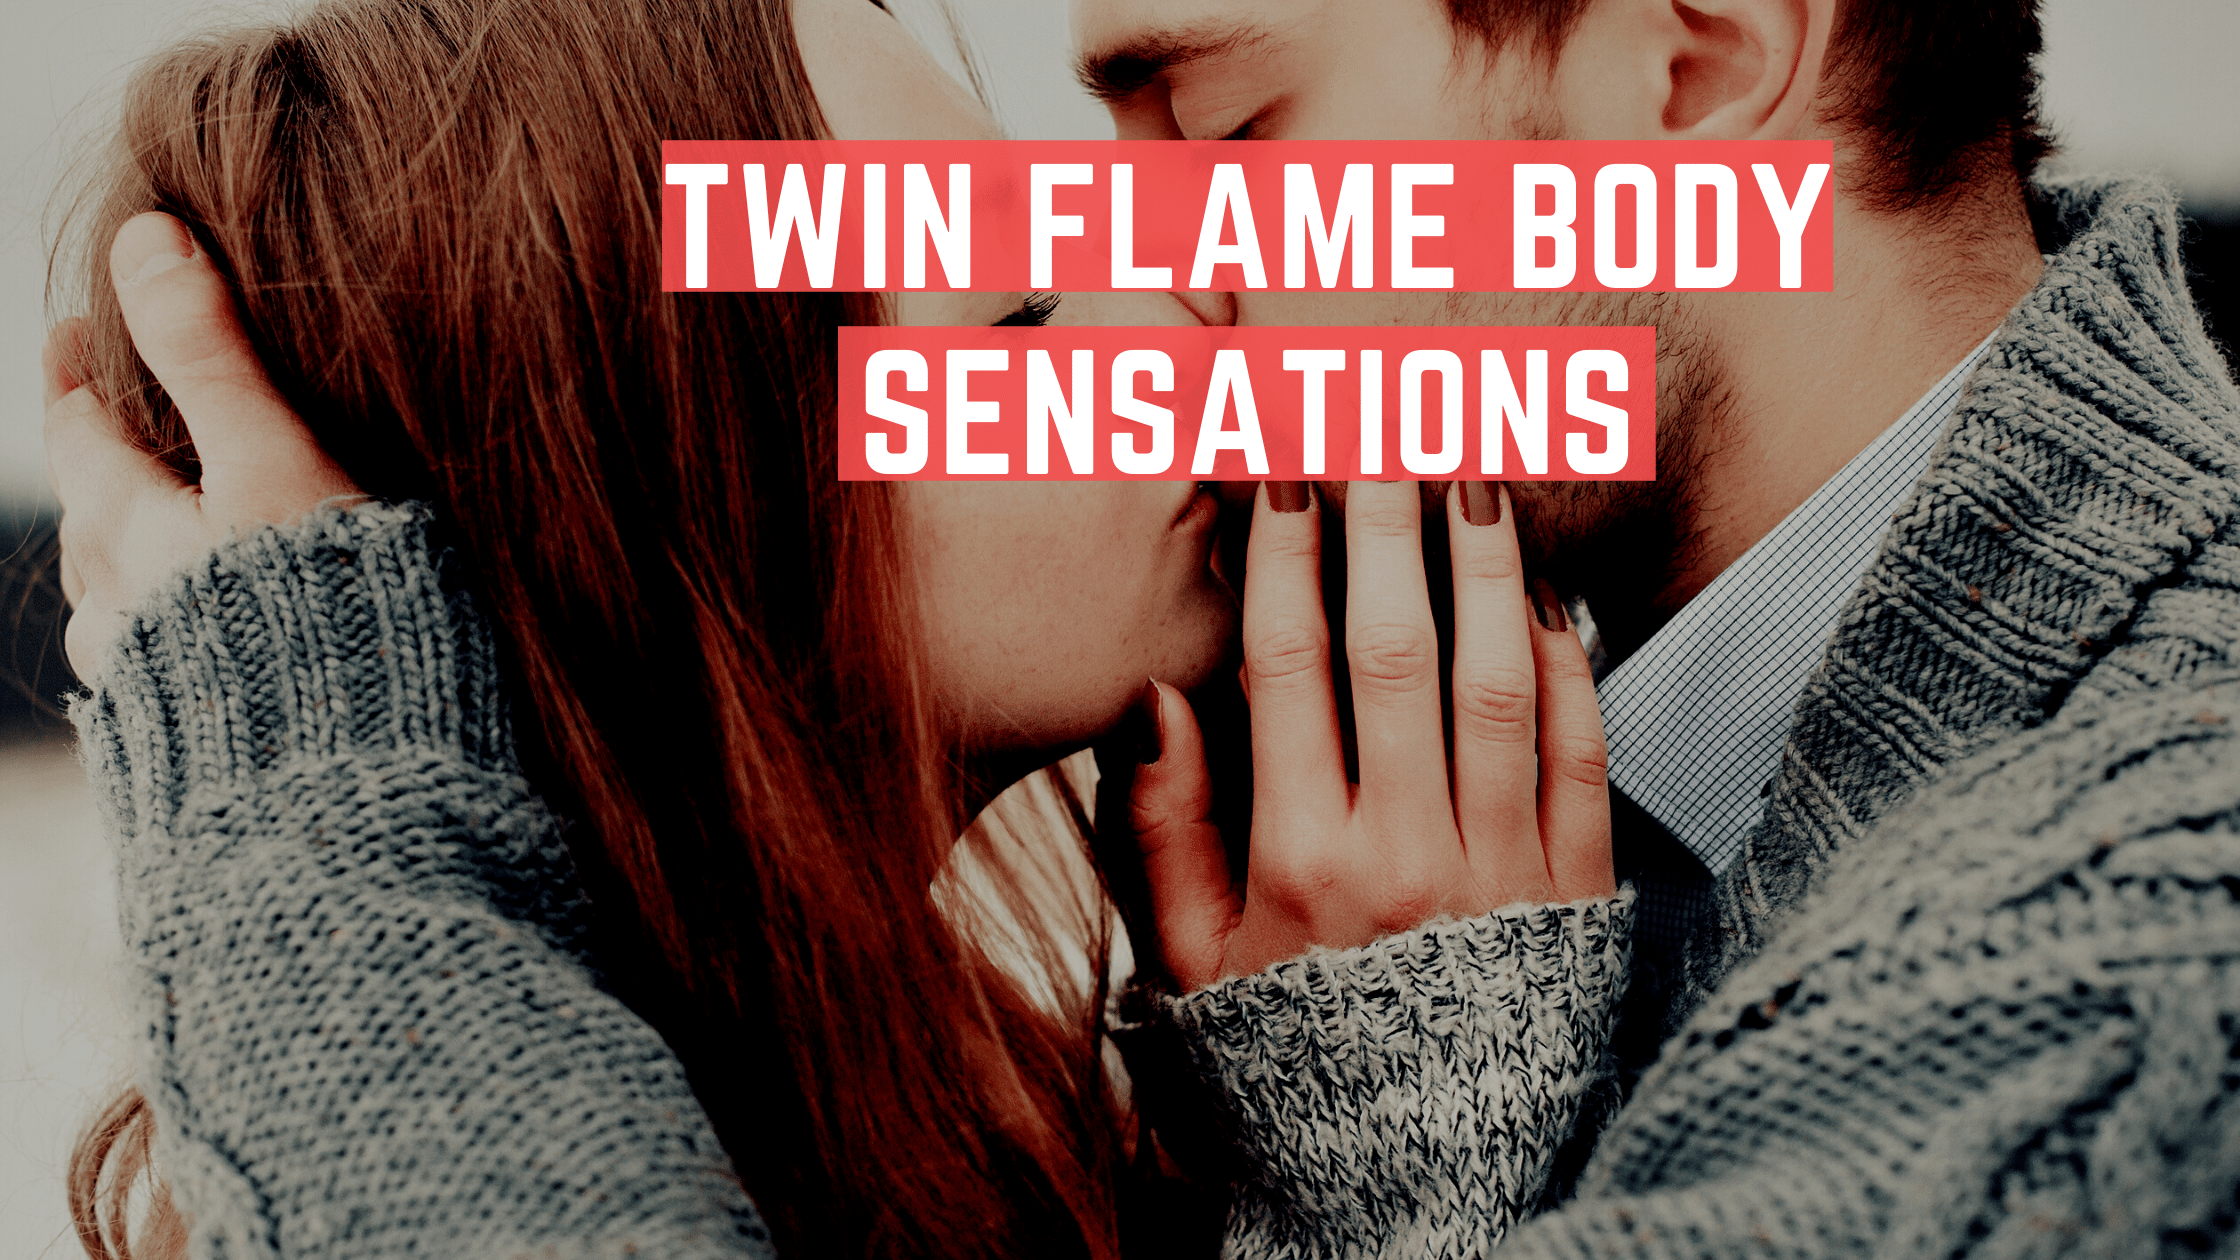 Twin Flame Body Sensations